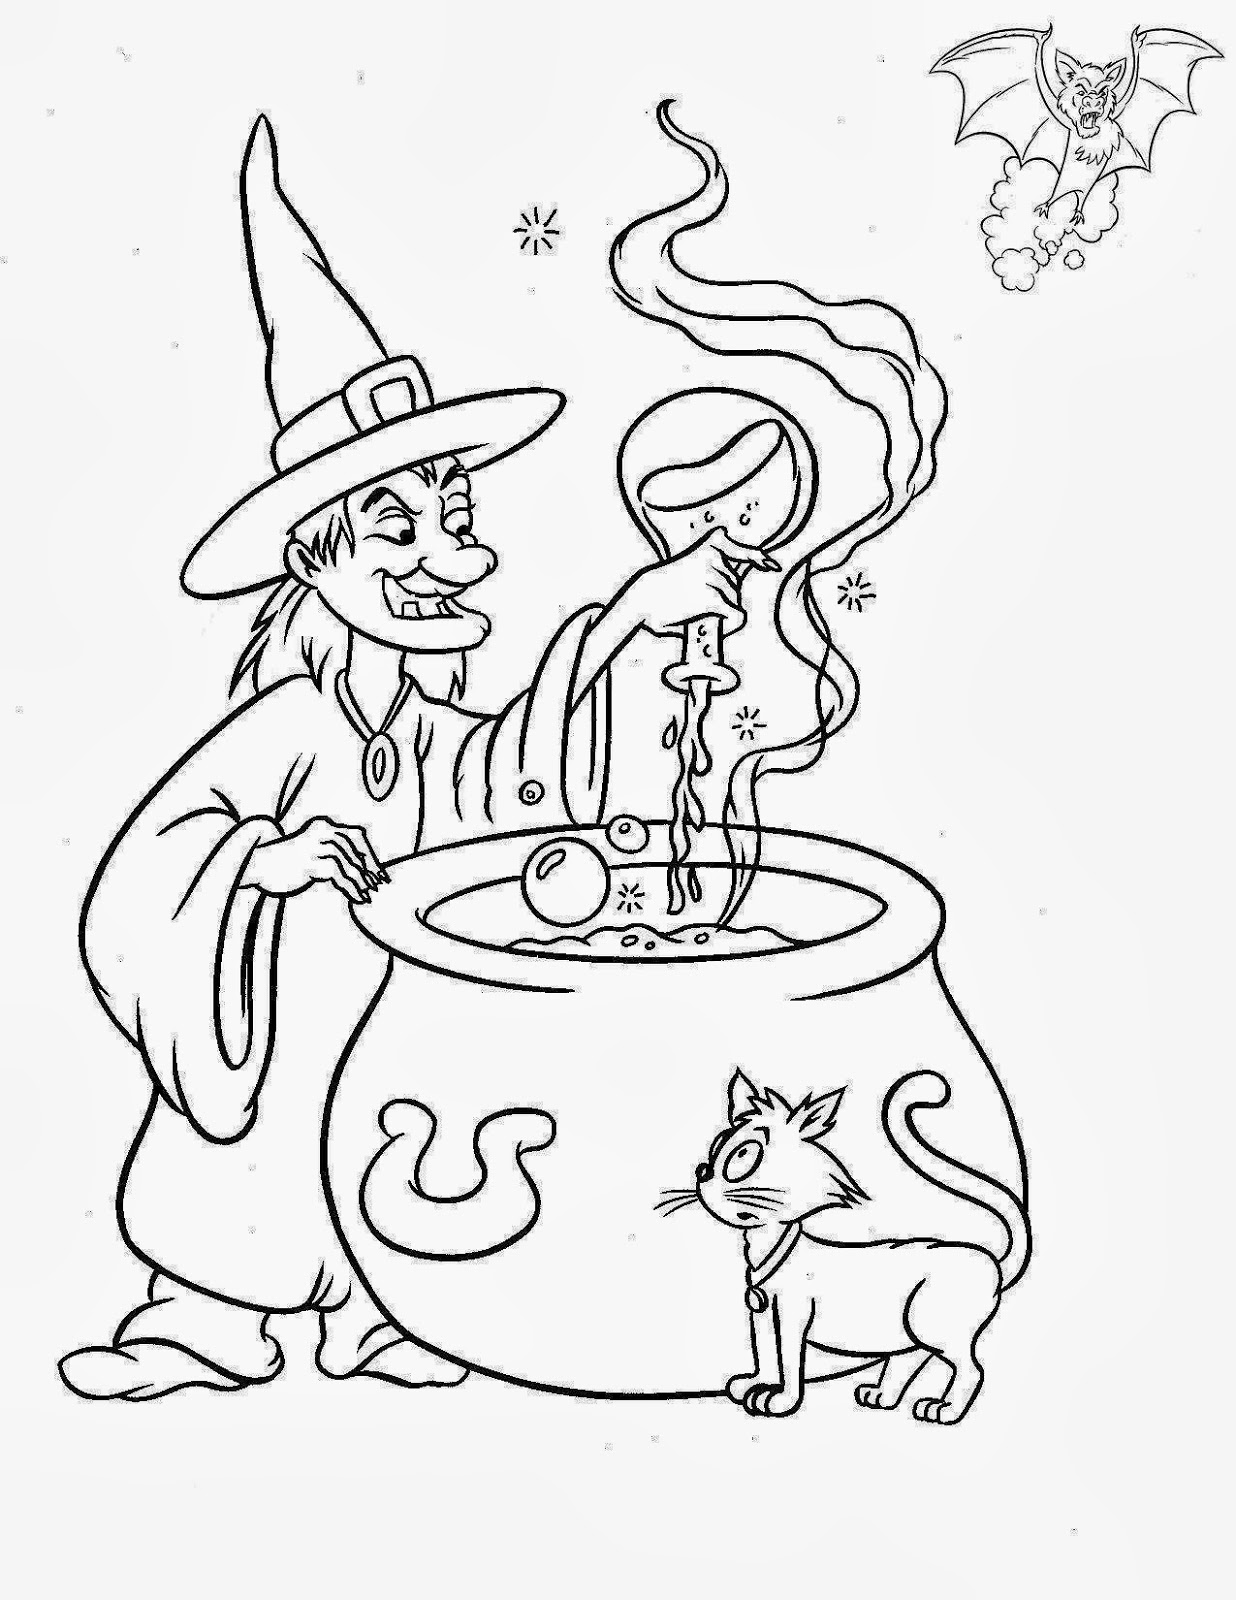 ImagesList.com: Halloween Witches for Coloring, part 1